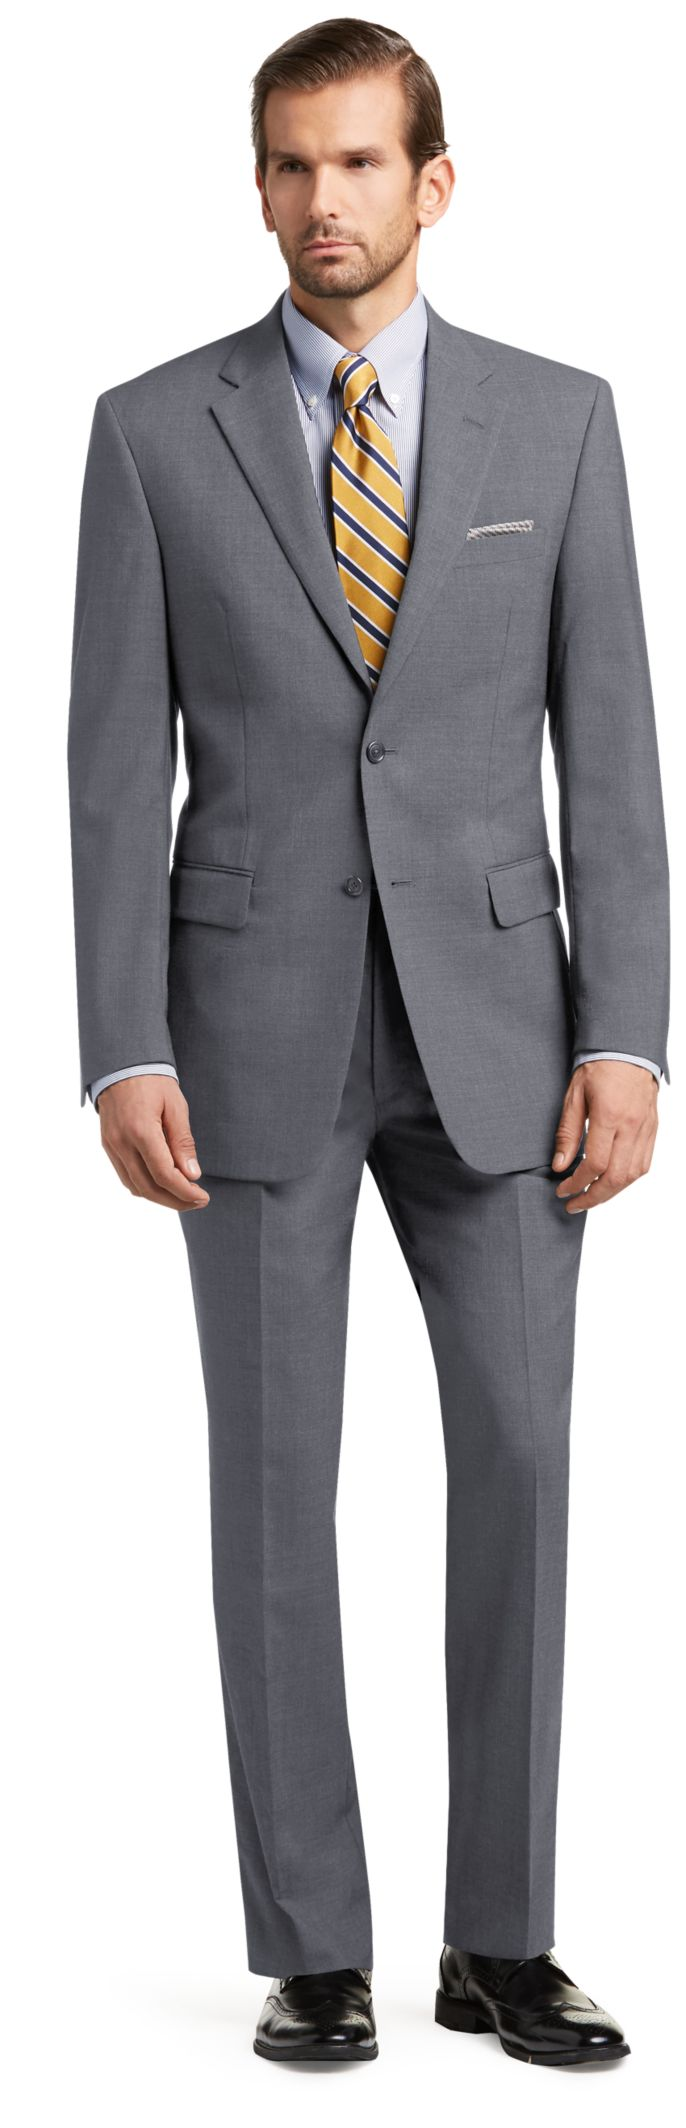 Executive Suits | Men's Suits | JoS. A. Bank Clothiers